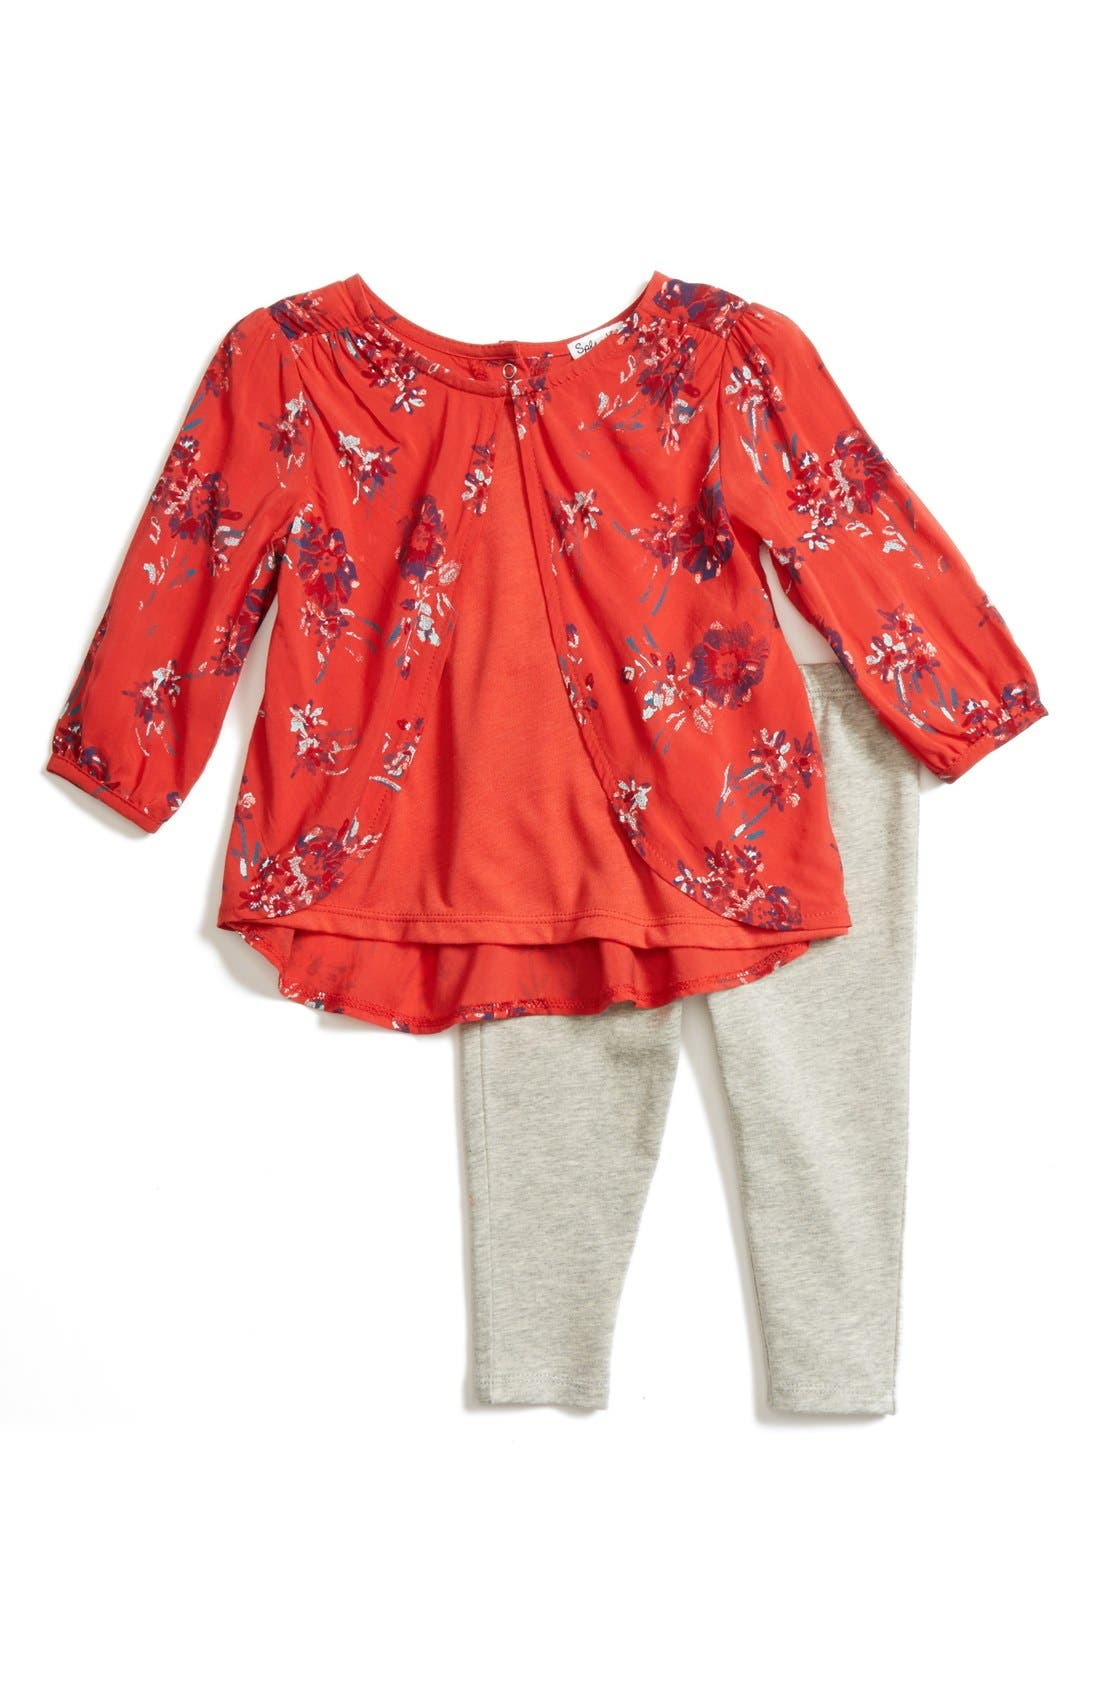 Main Image - Splendid Floral Print Tunic & Leggings Set (Baby Girls)